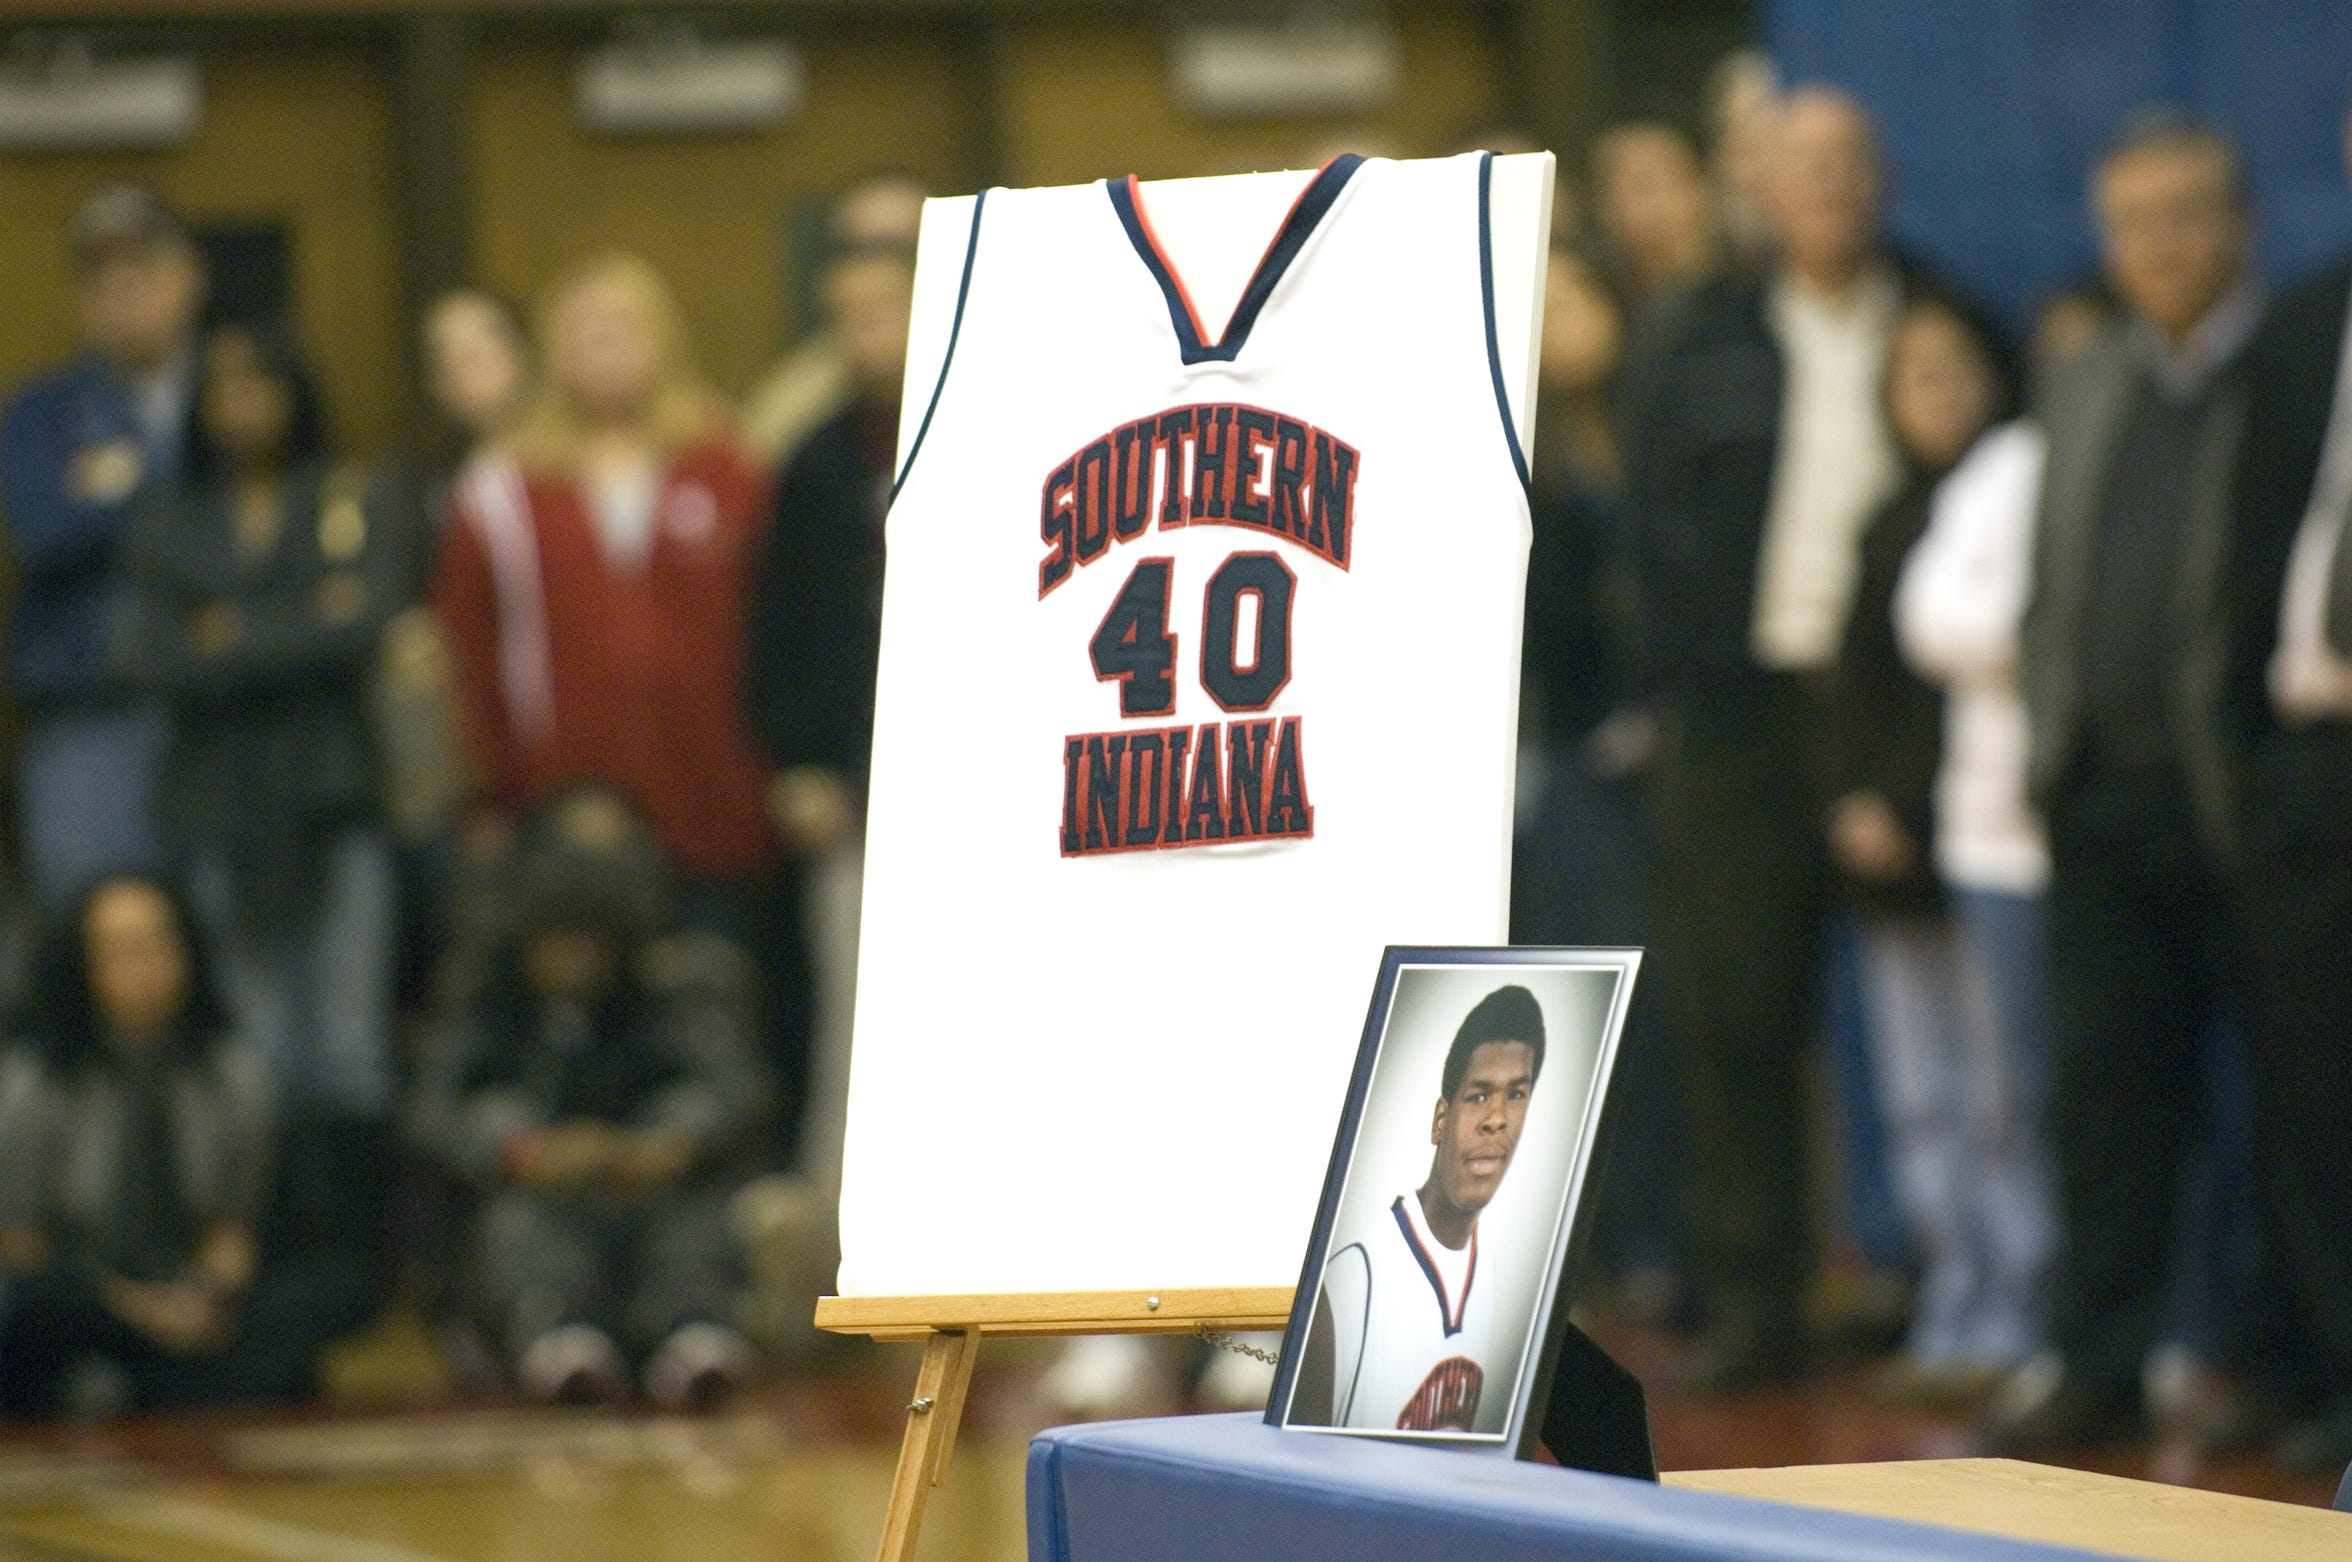 A photo of Jeron Lewis and his jersey were on display during a news conference about Lewis' death at the Physical Activities Center (PAC) on the University of Southern Indiana campus in Evansville on Friday, January 15, 2010.  Lewis died at the Owensboro Medical Health System after collapsing on the court during the Jan. 14, 2010 night's game against Kentucky Wesleyan College.